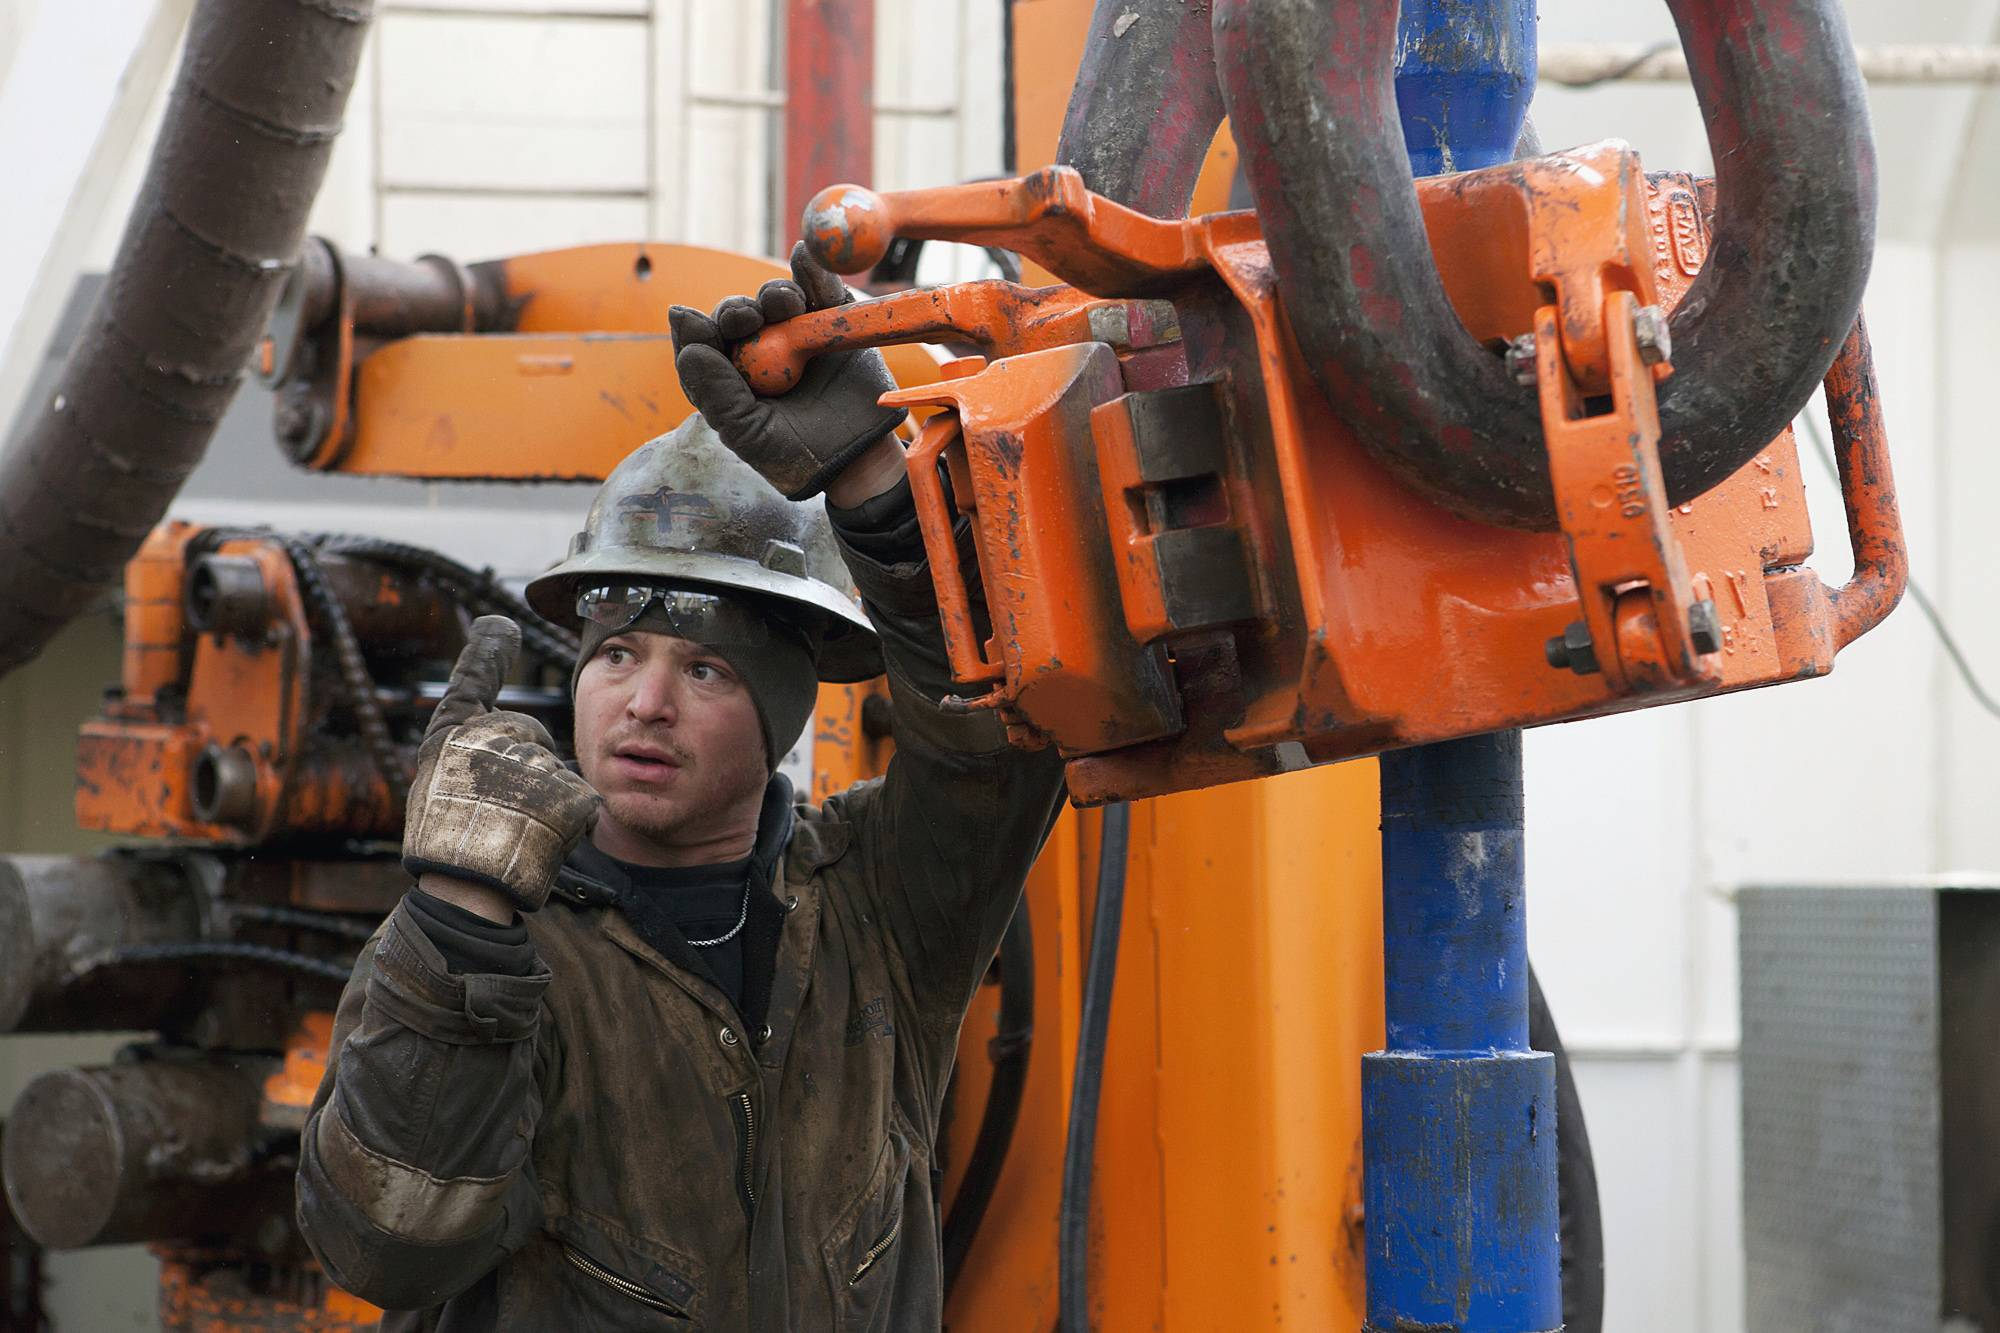 In this Dec. 5, 2013 file photo, Russell Girsh motions to his driller to turn the equipment on at an oil rig near Watford City, N.D. Oil and gas workers earned an average 11 percent more an hour in April than they did a year ago, according to the Bureau of Labor Statistics. That's more than five times the average gain across all industries.